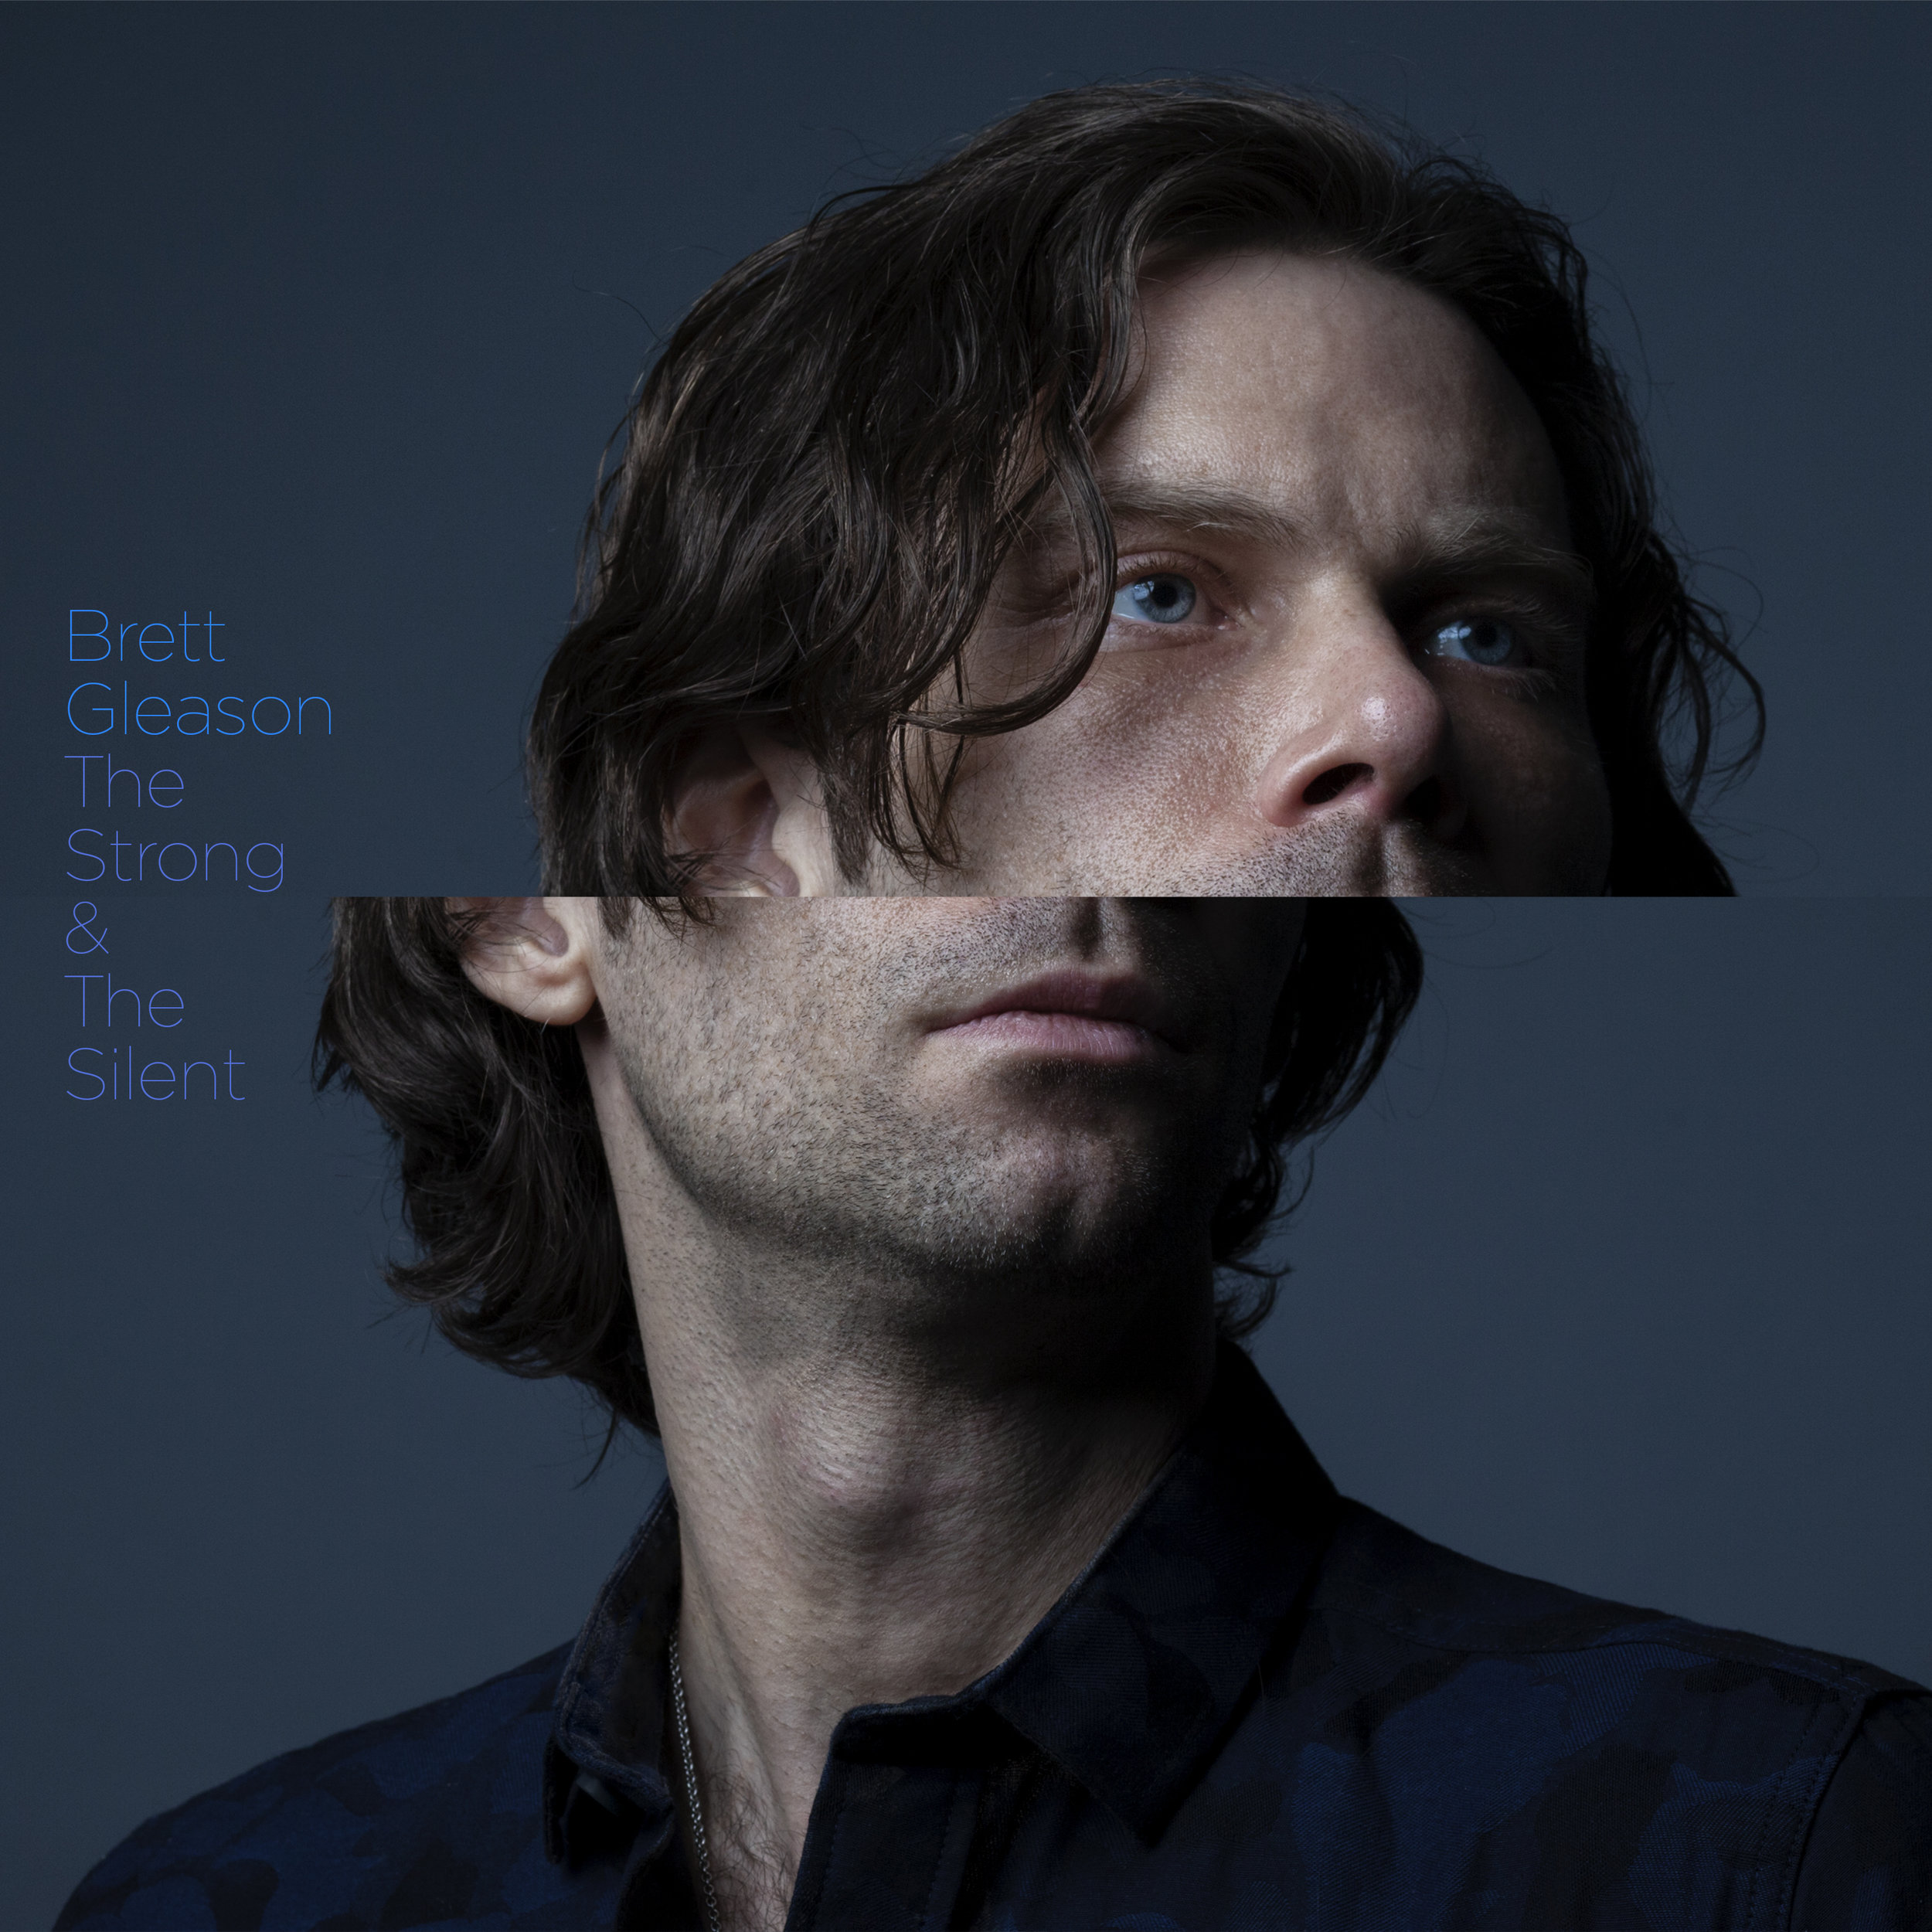 Brett Gleason Single Art The Strong & The Silent.jpg